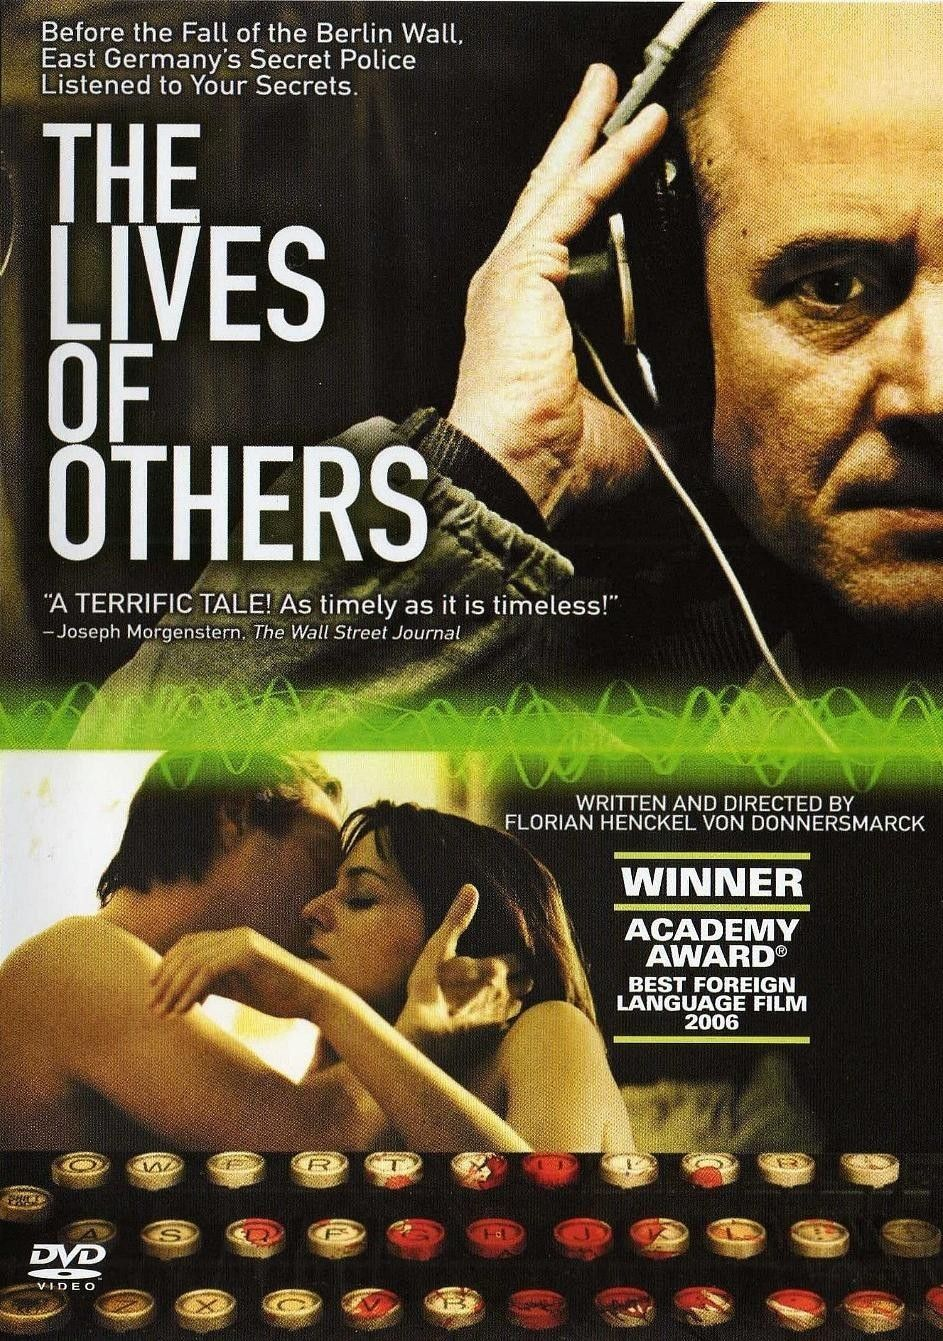 The Lives Of Others 2006 The Lives Of Others German Movies Foreign Movies